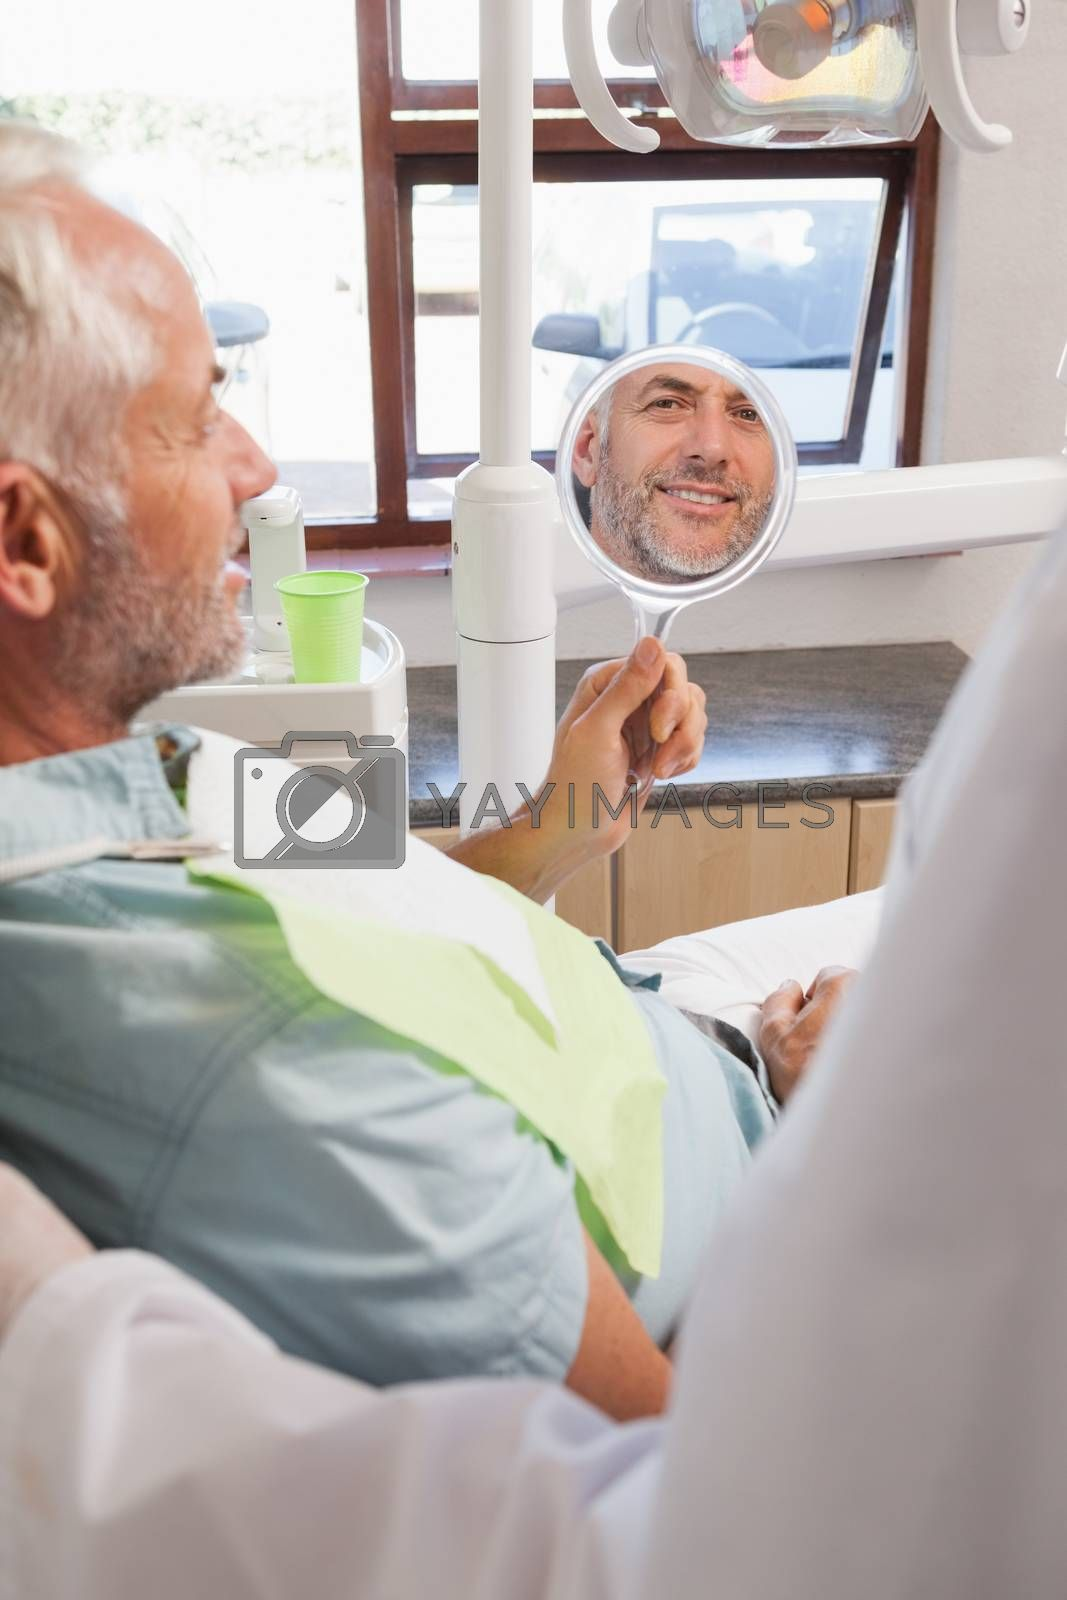 Patient admiring new smile in the mirror at the dental clinic